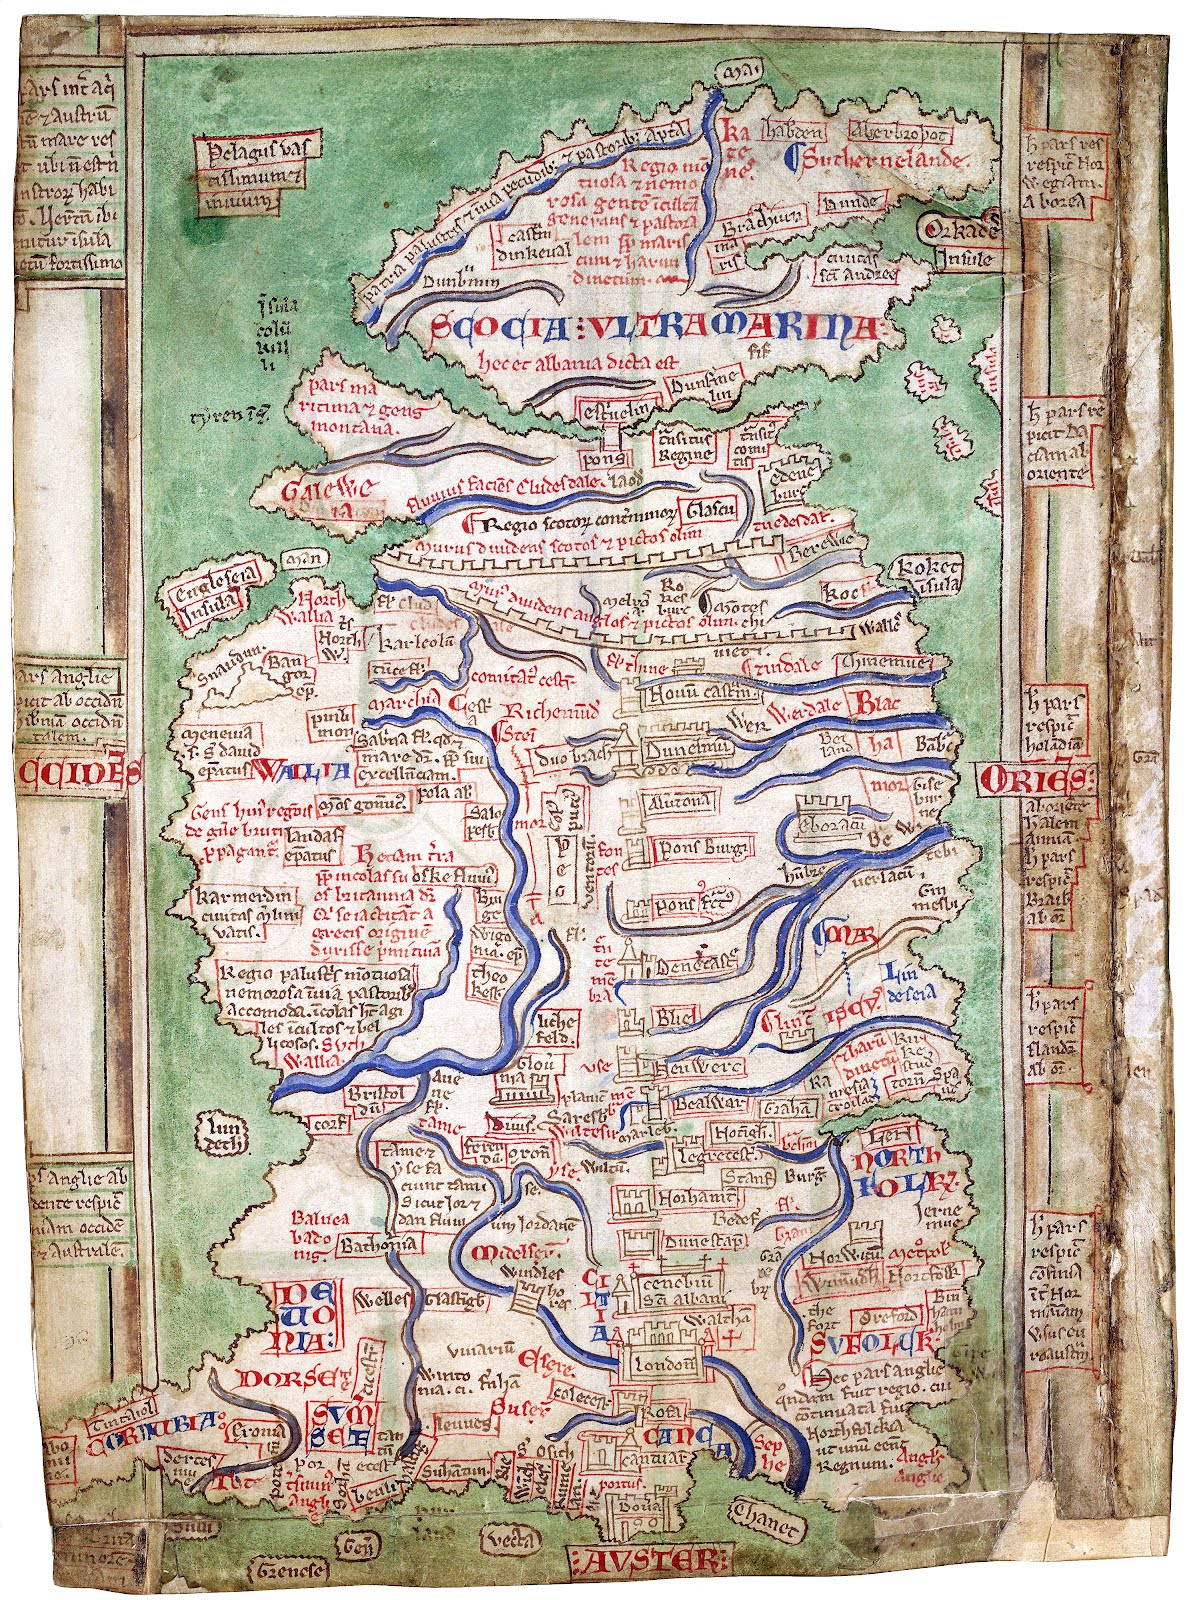 Source: http://aclerkofoxford.blogspot.ca/2012/04/description-of-britain-c1270.html